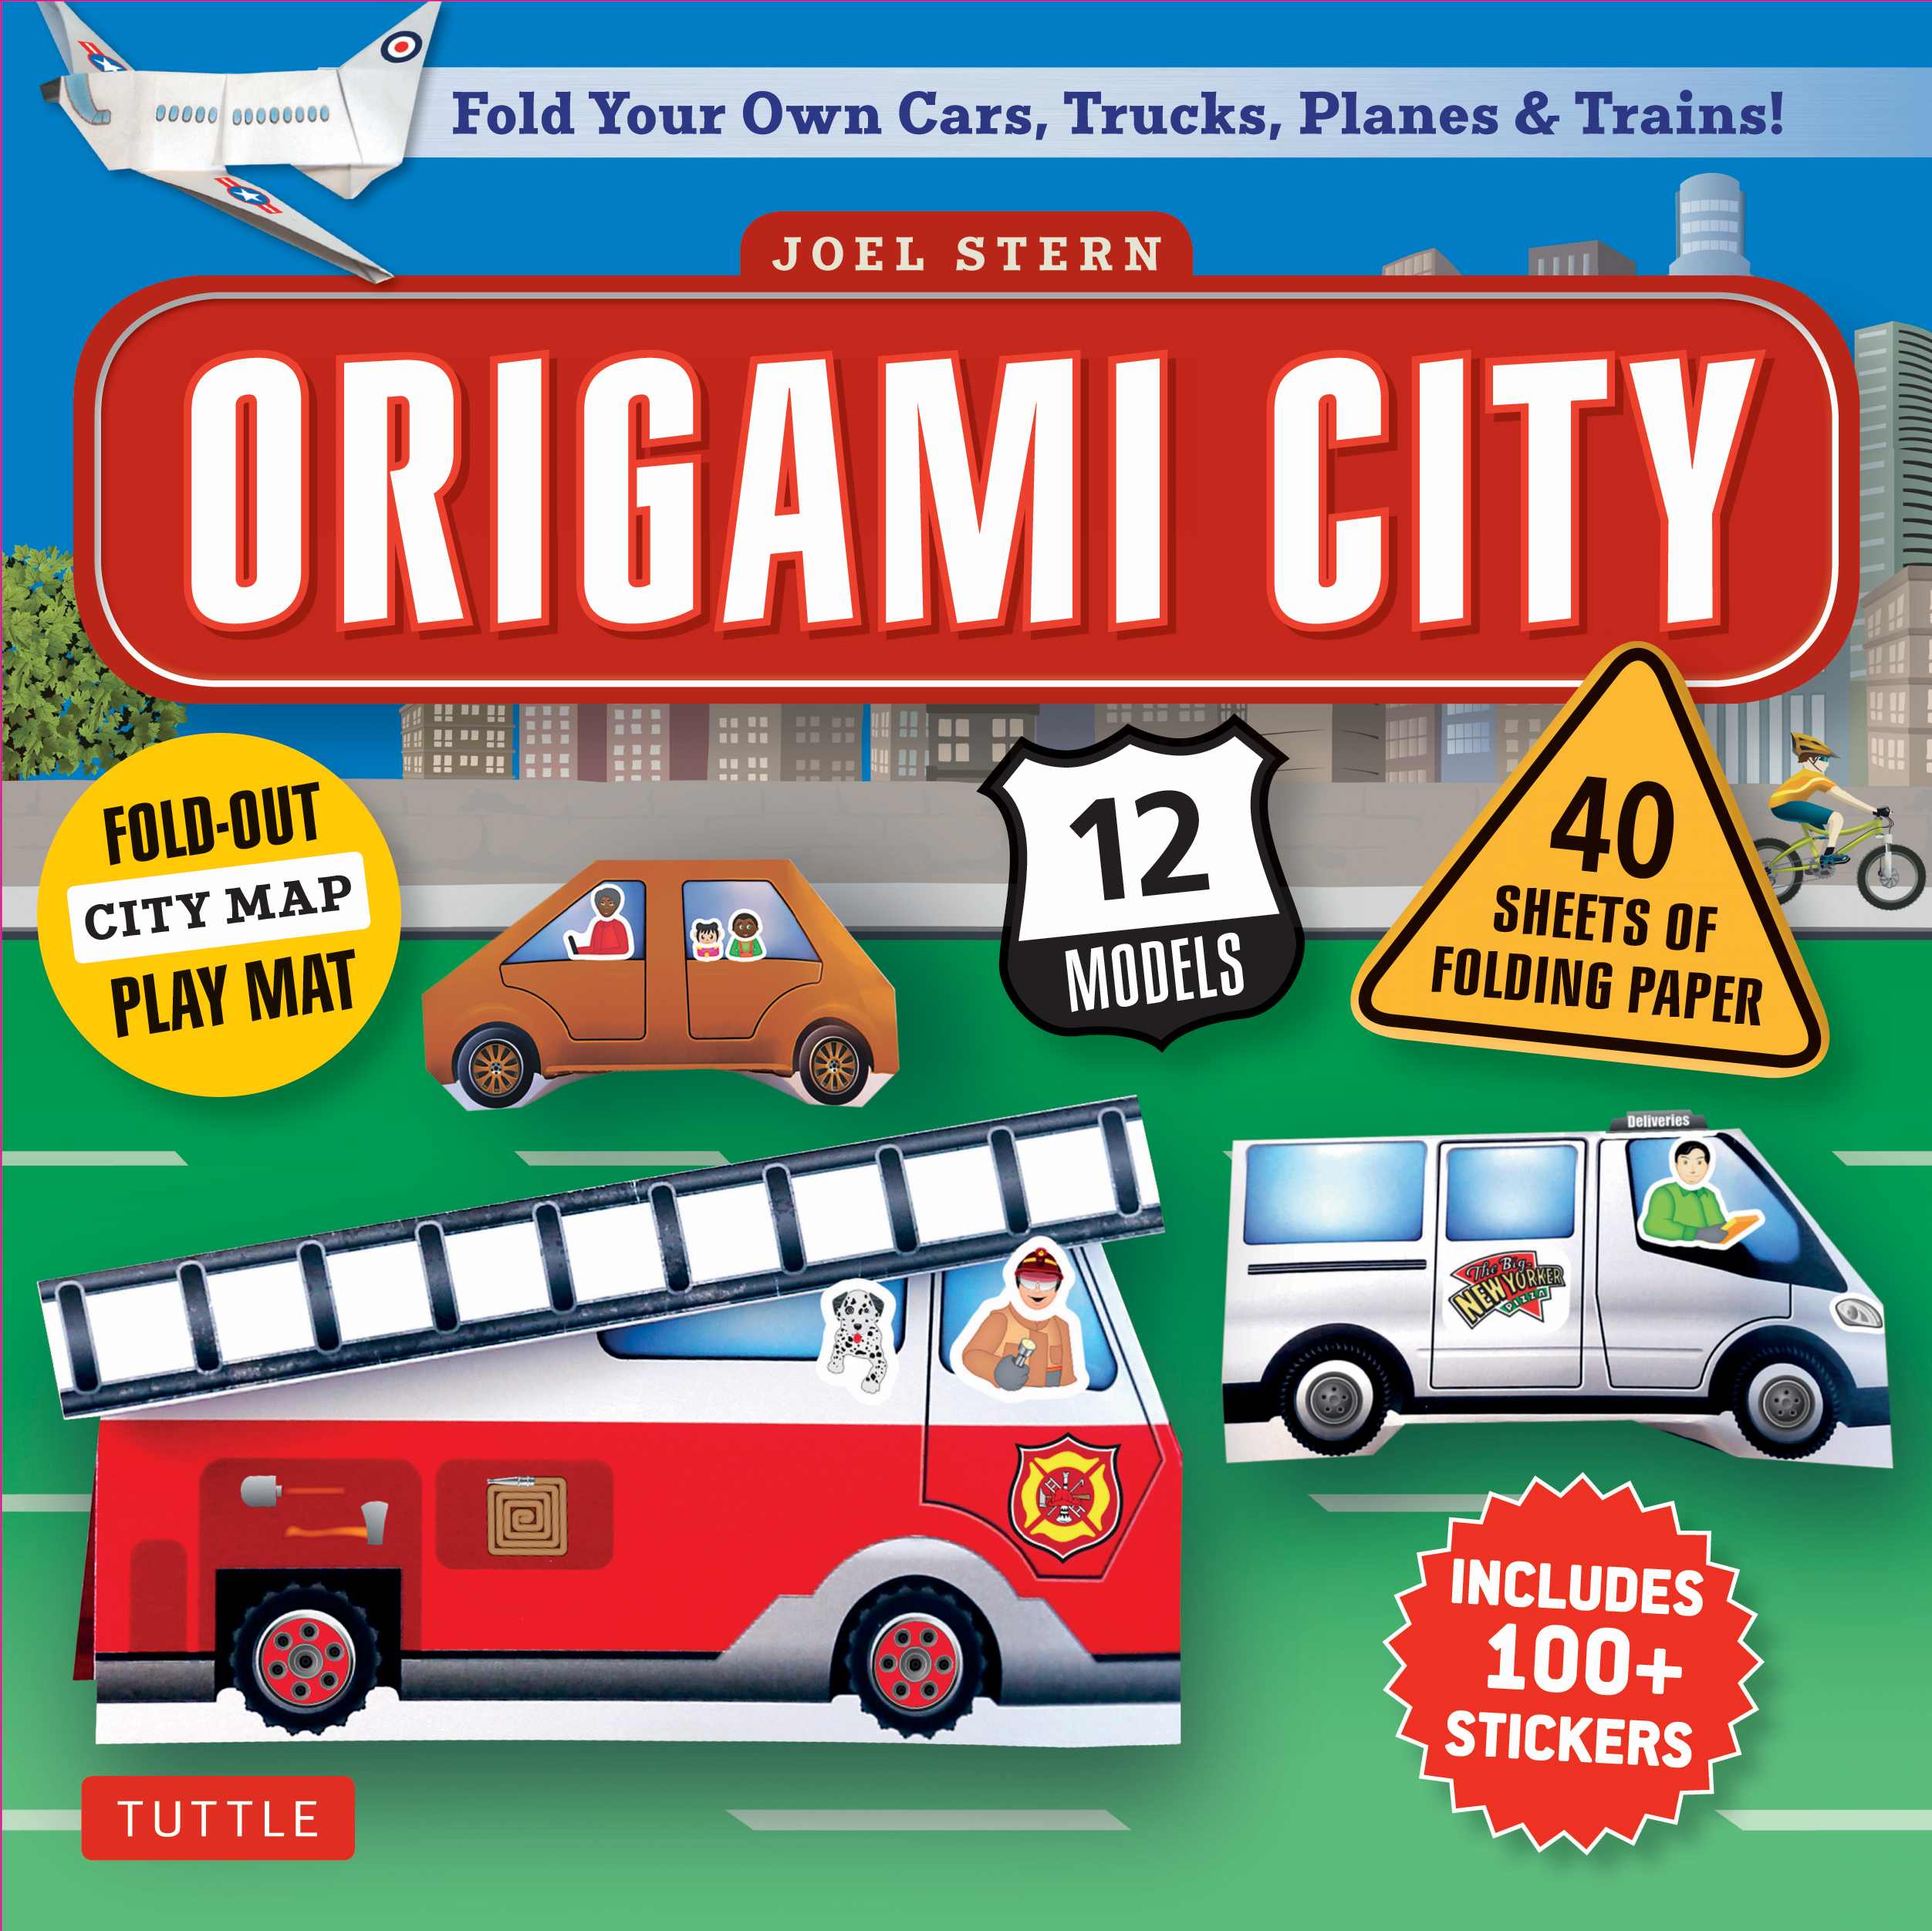 Origami City Kit Contains 40 Colorful Papers For Exciting Models Like Trains Cars Firetrucks Helicopters Motorcycles And Delivery Vans